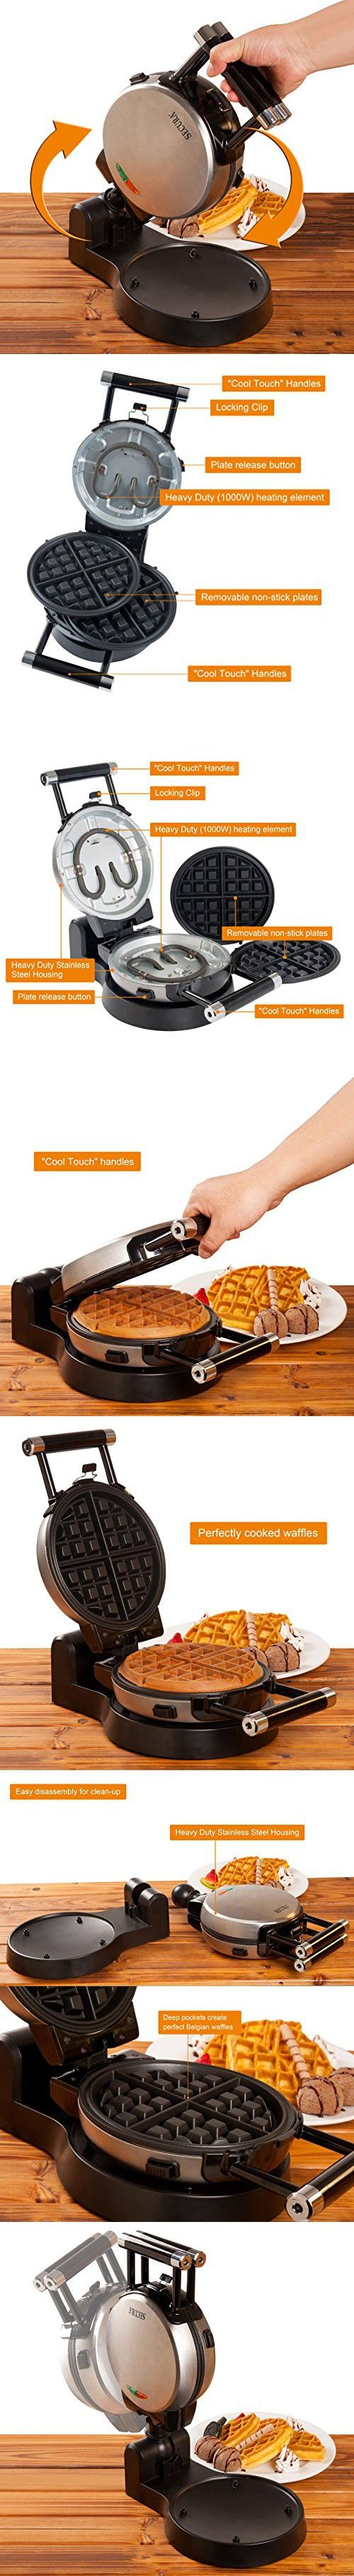 Secura 360 Rotating Belgian Waffle Maker w/ Removable Non-Stick Plates and Recipes